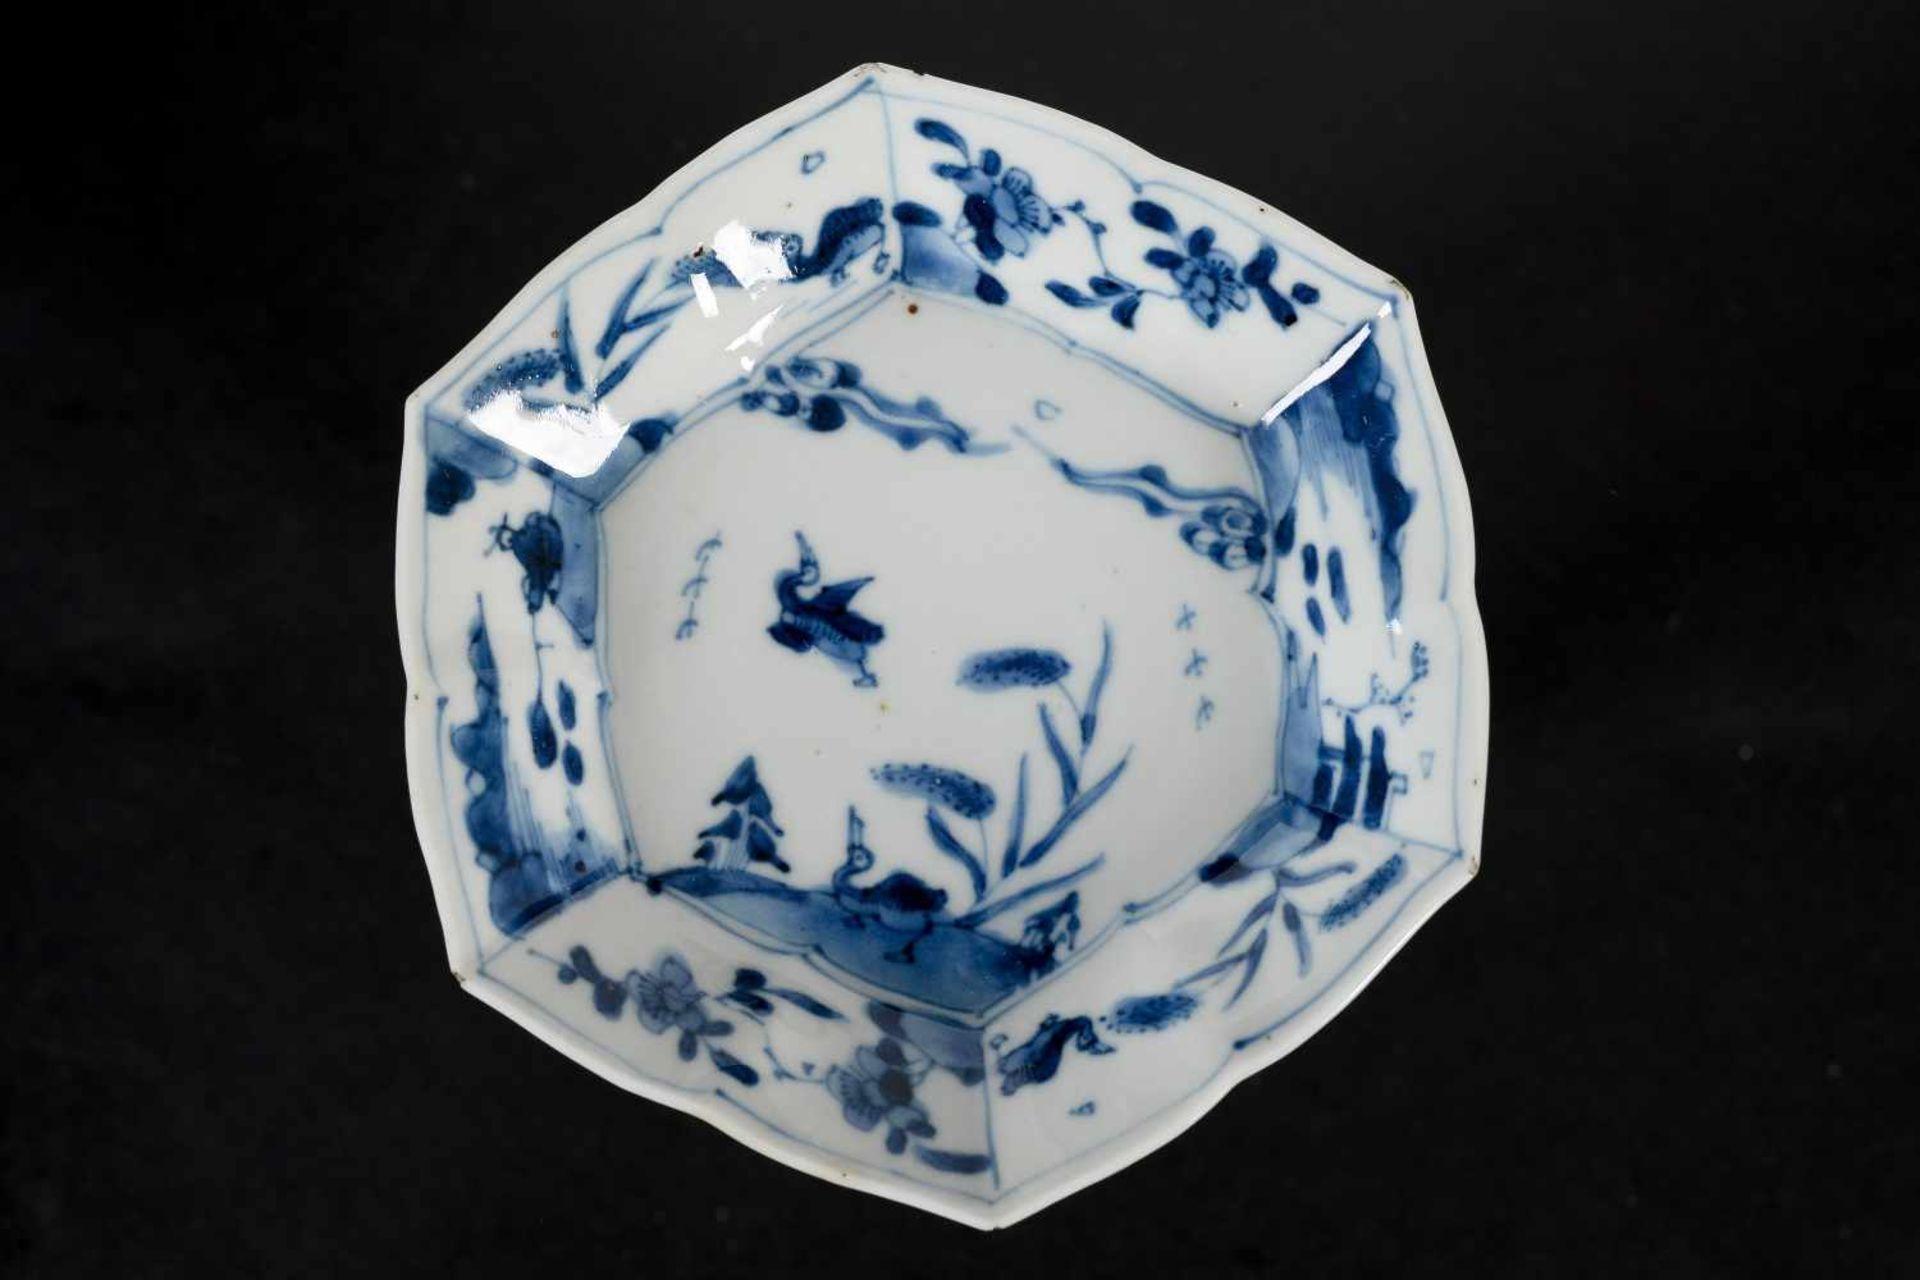 A set of three hexagonal blue and white porcelain cups with saucers, decorated with ducks, flowers - Bild 5 aus 12